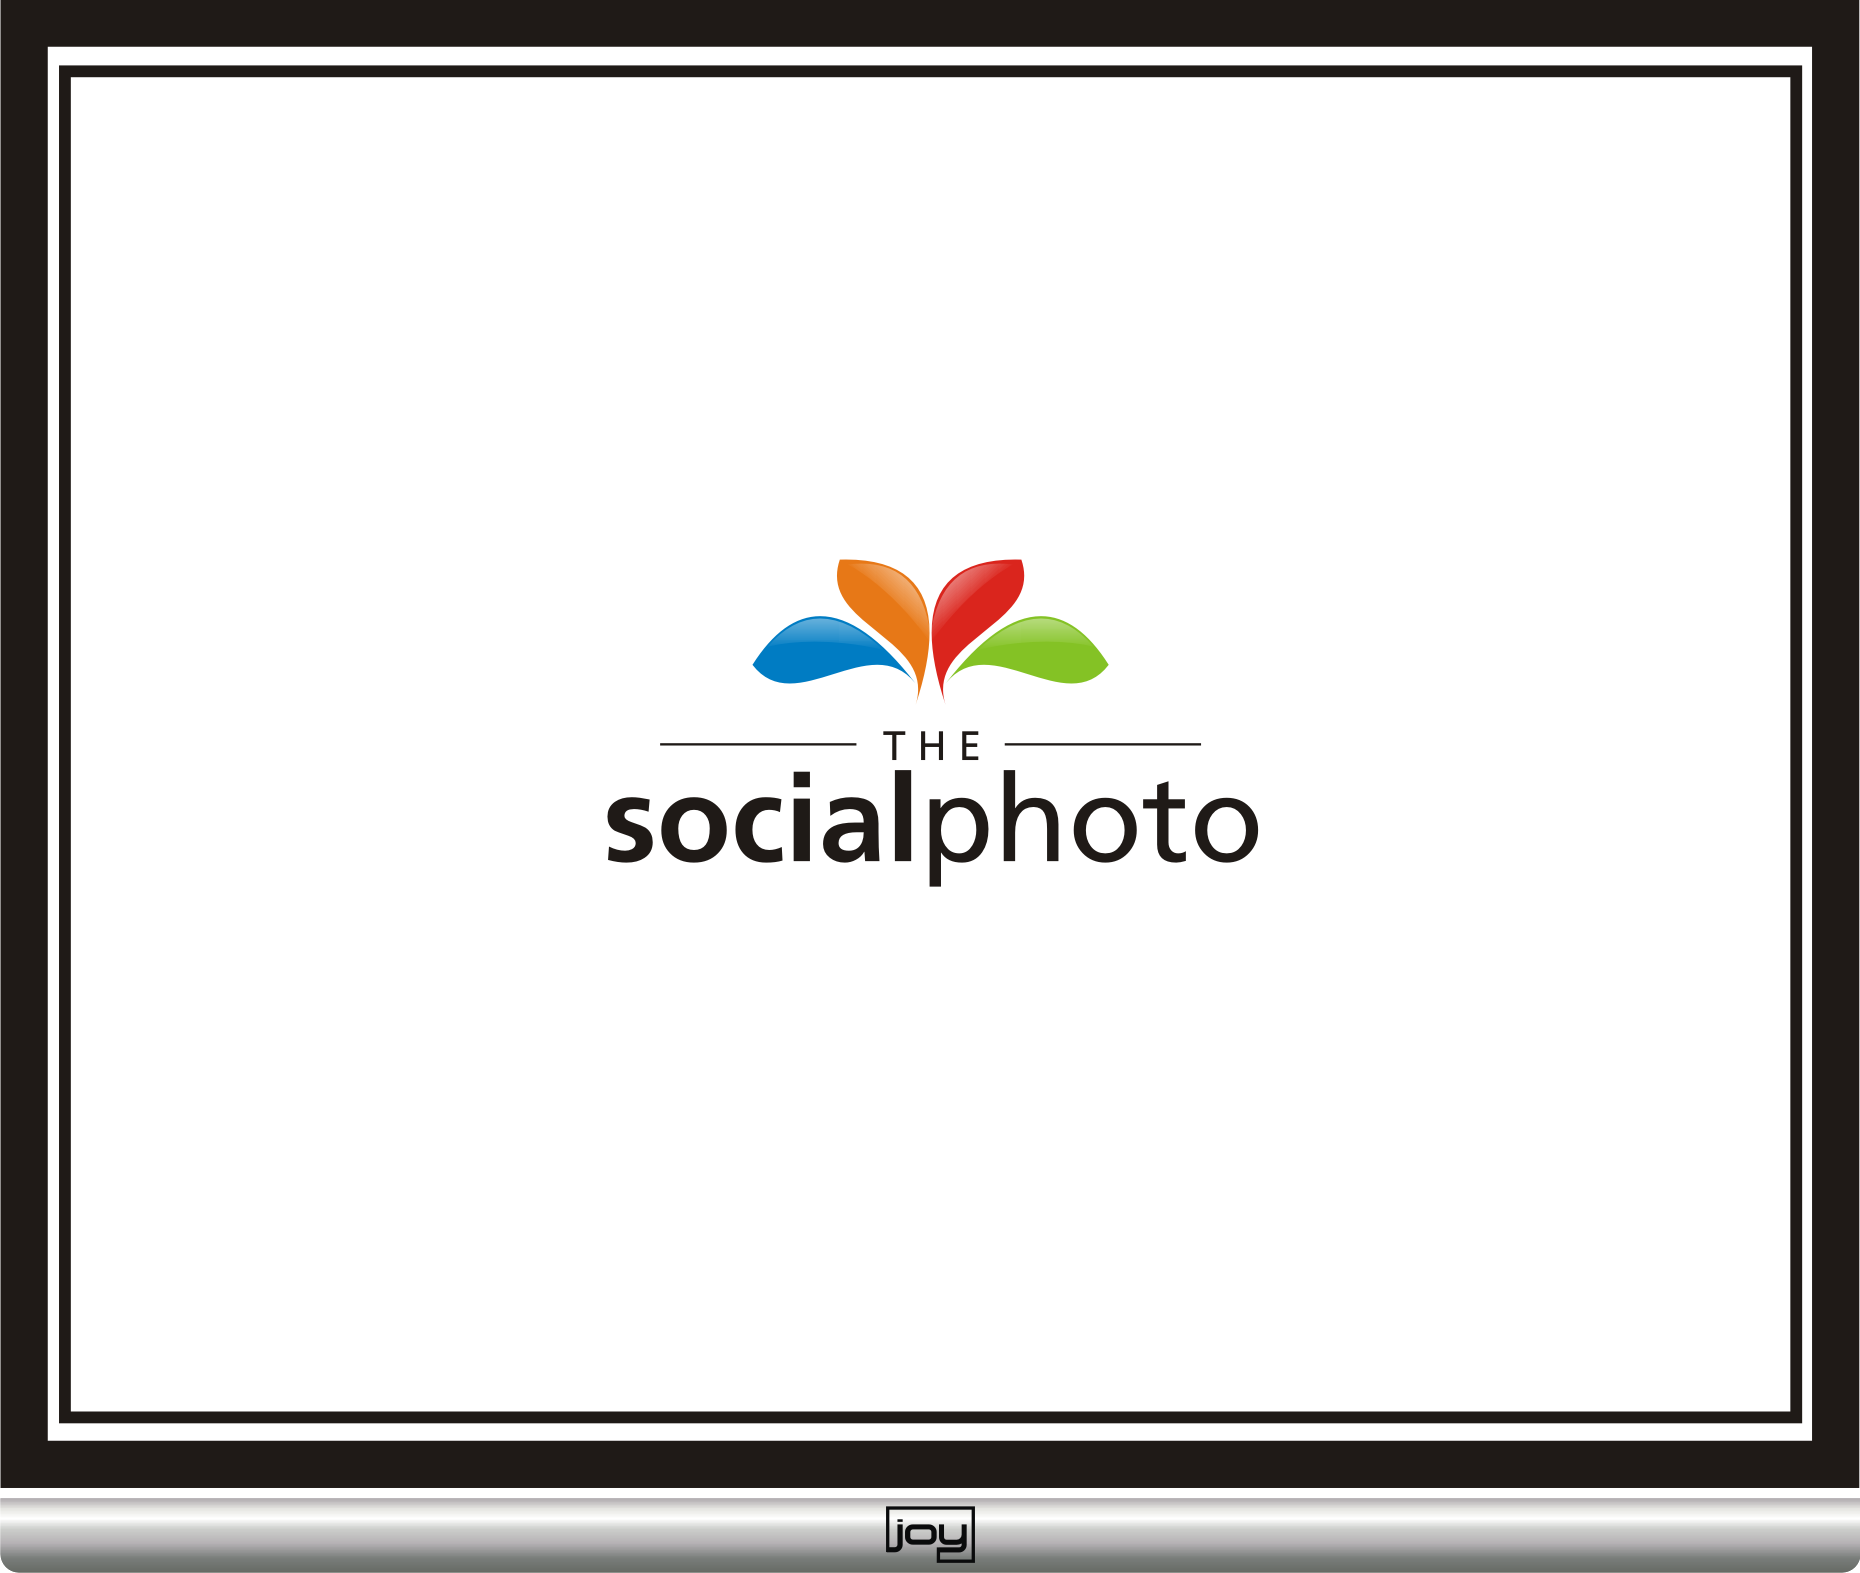 Logo Design by joysetiawan - Entry No. 13 in the Logo Design Contest New Logo Design for the social photo.